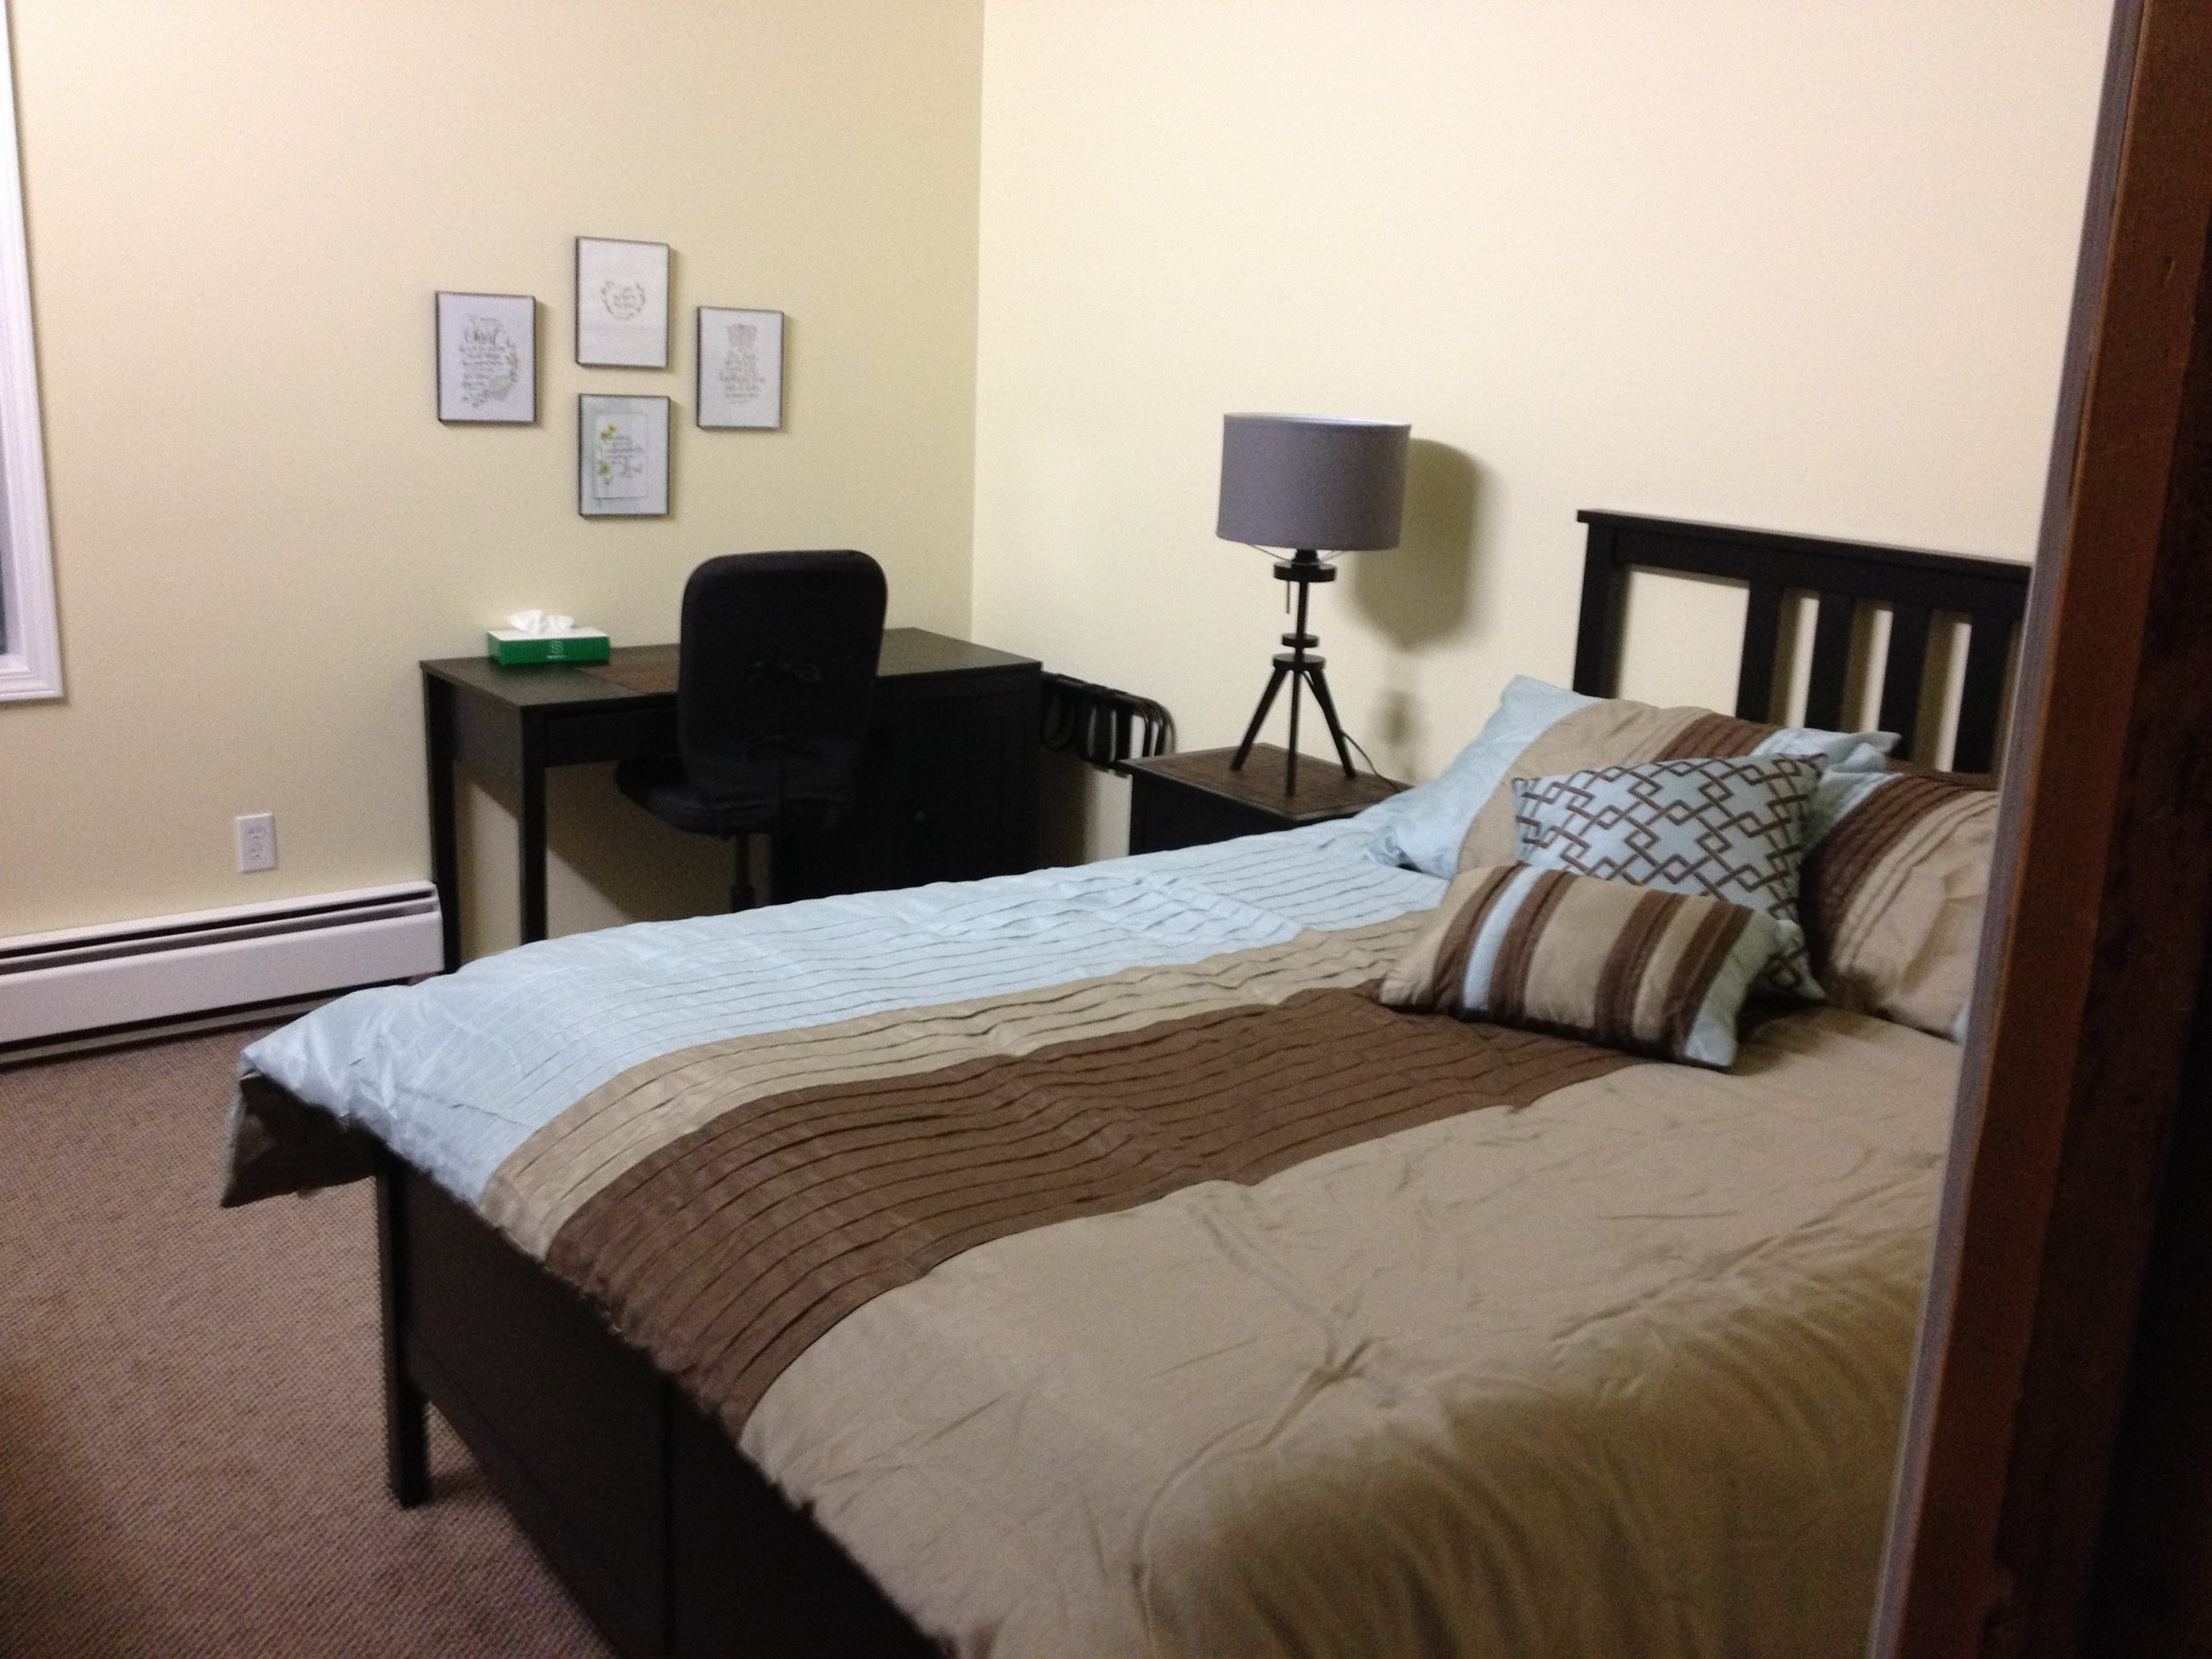 Room 101 - Special Guest Room - Queen bed and desk